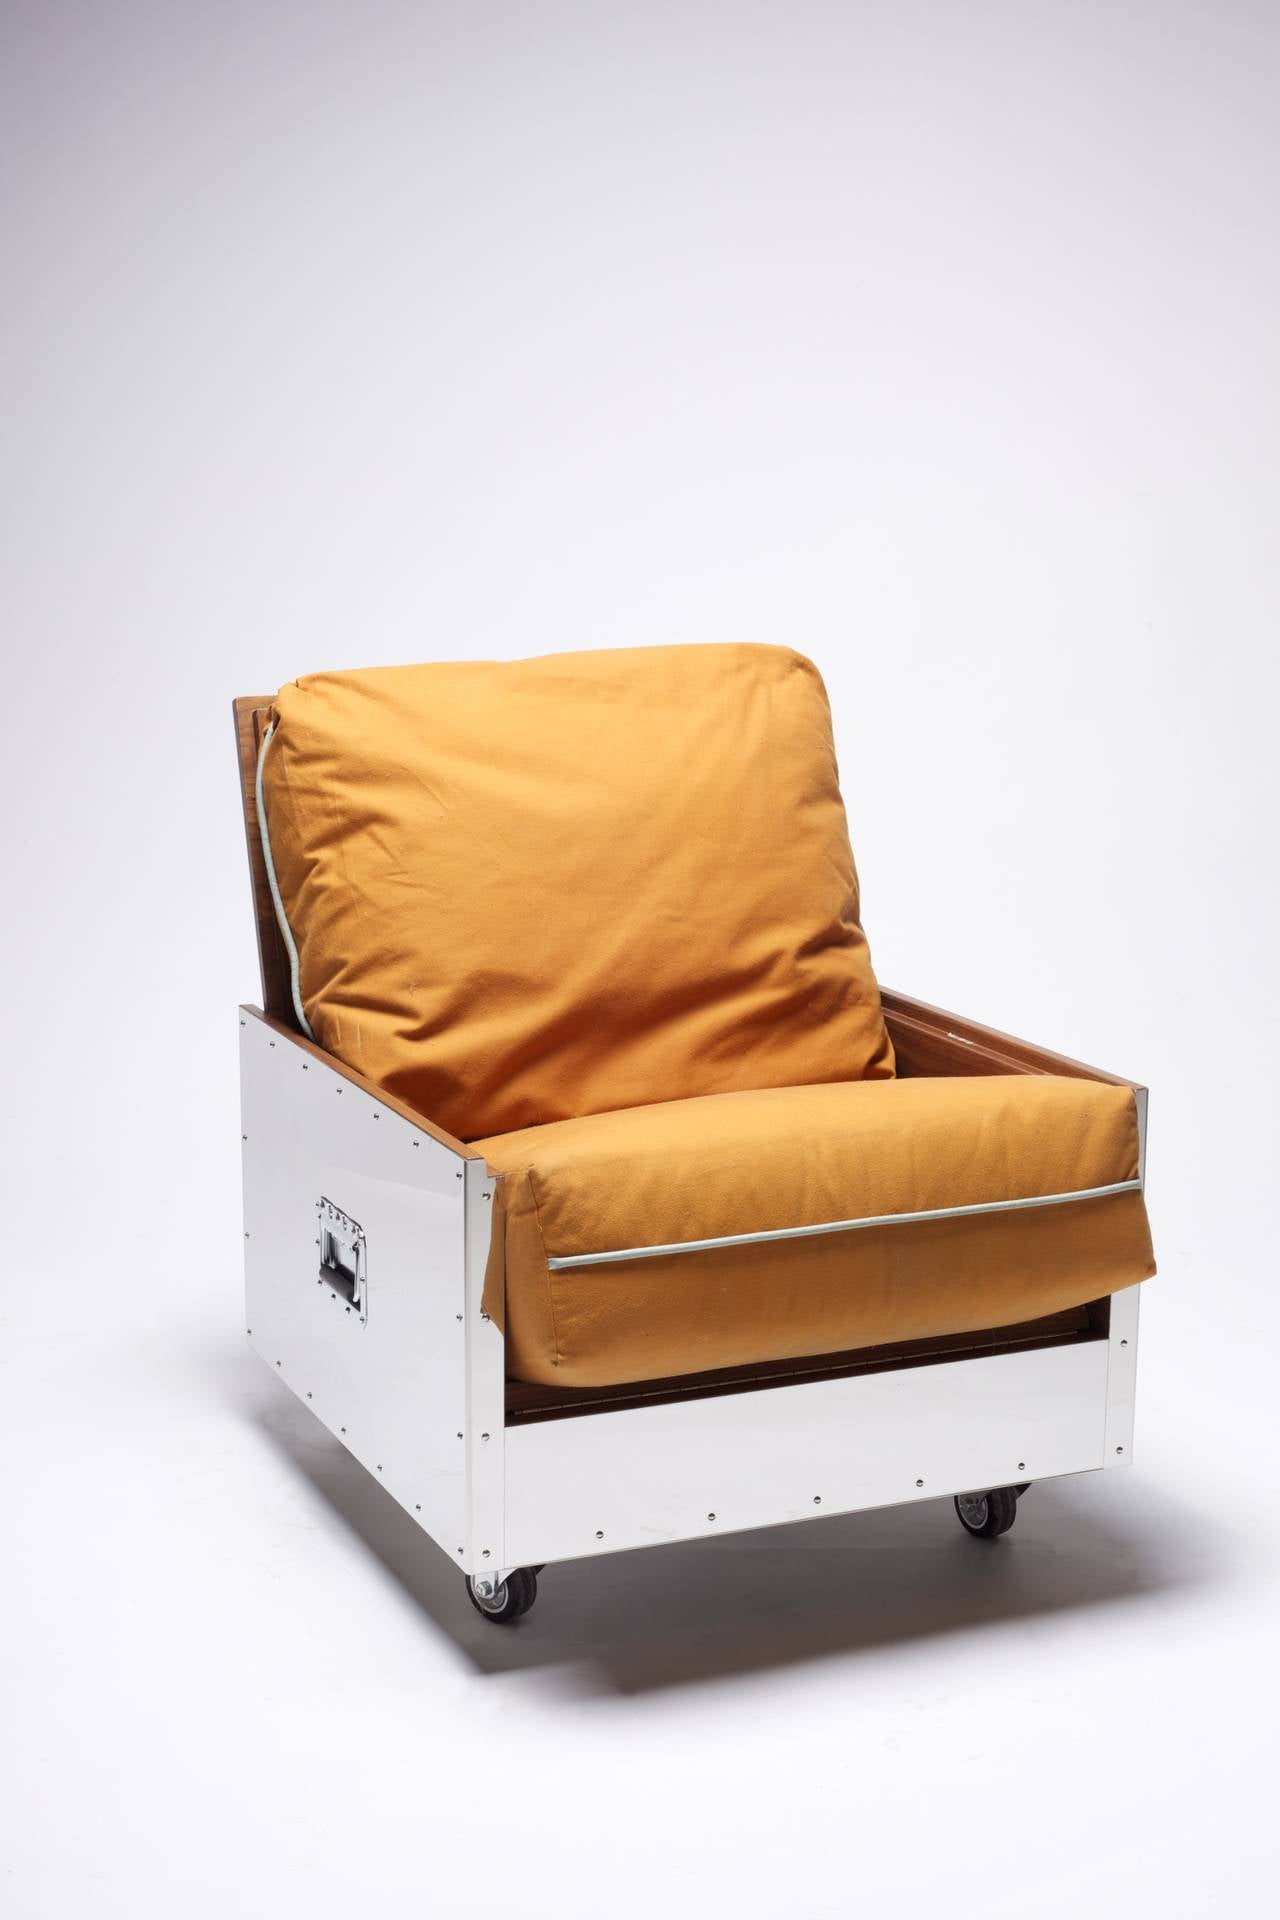 Polished Expandable Sofa Chair Stainless Steel Frame with Cushion Upholstered For Sale